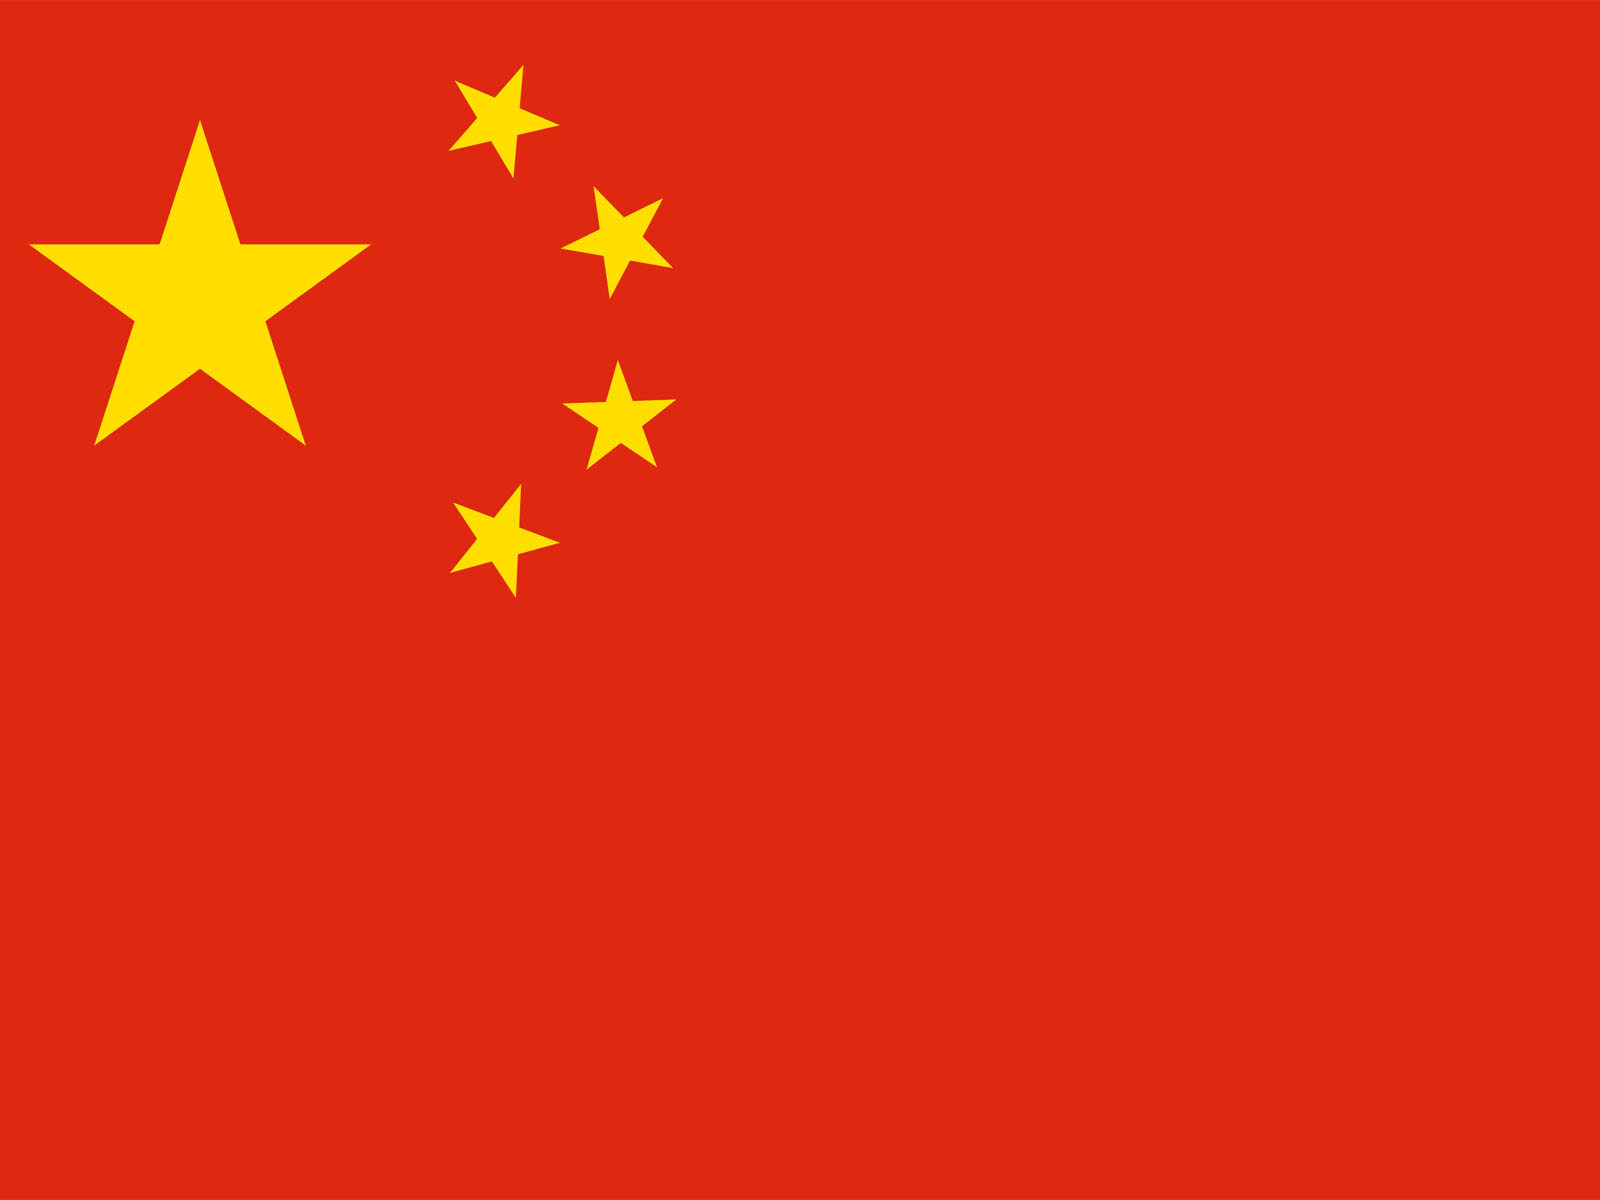 China Flag Backgrounds Flag Red Yellow Templates